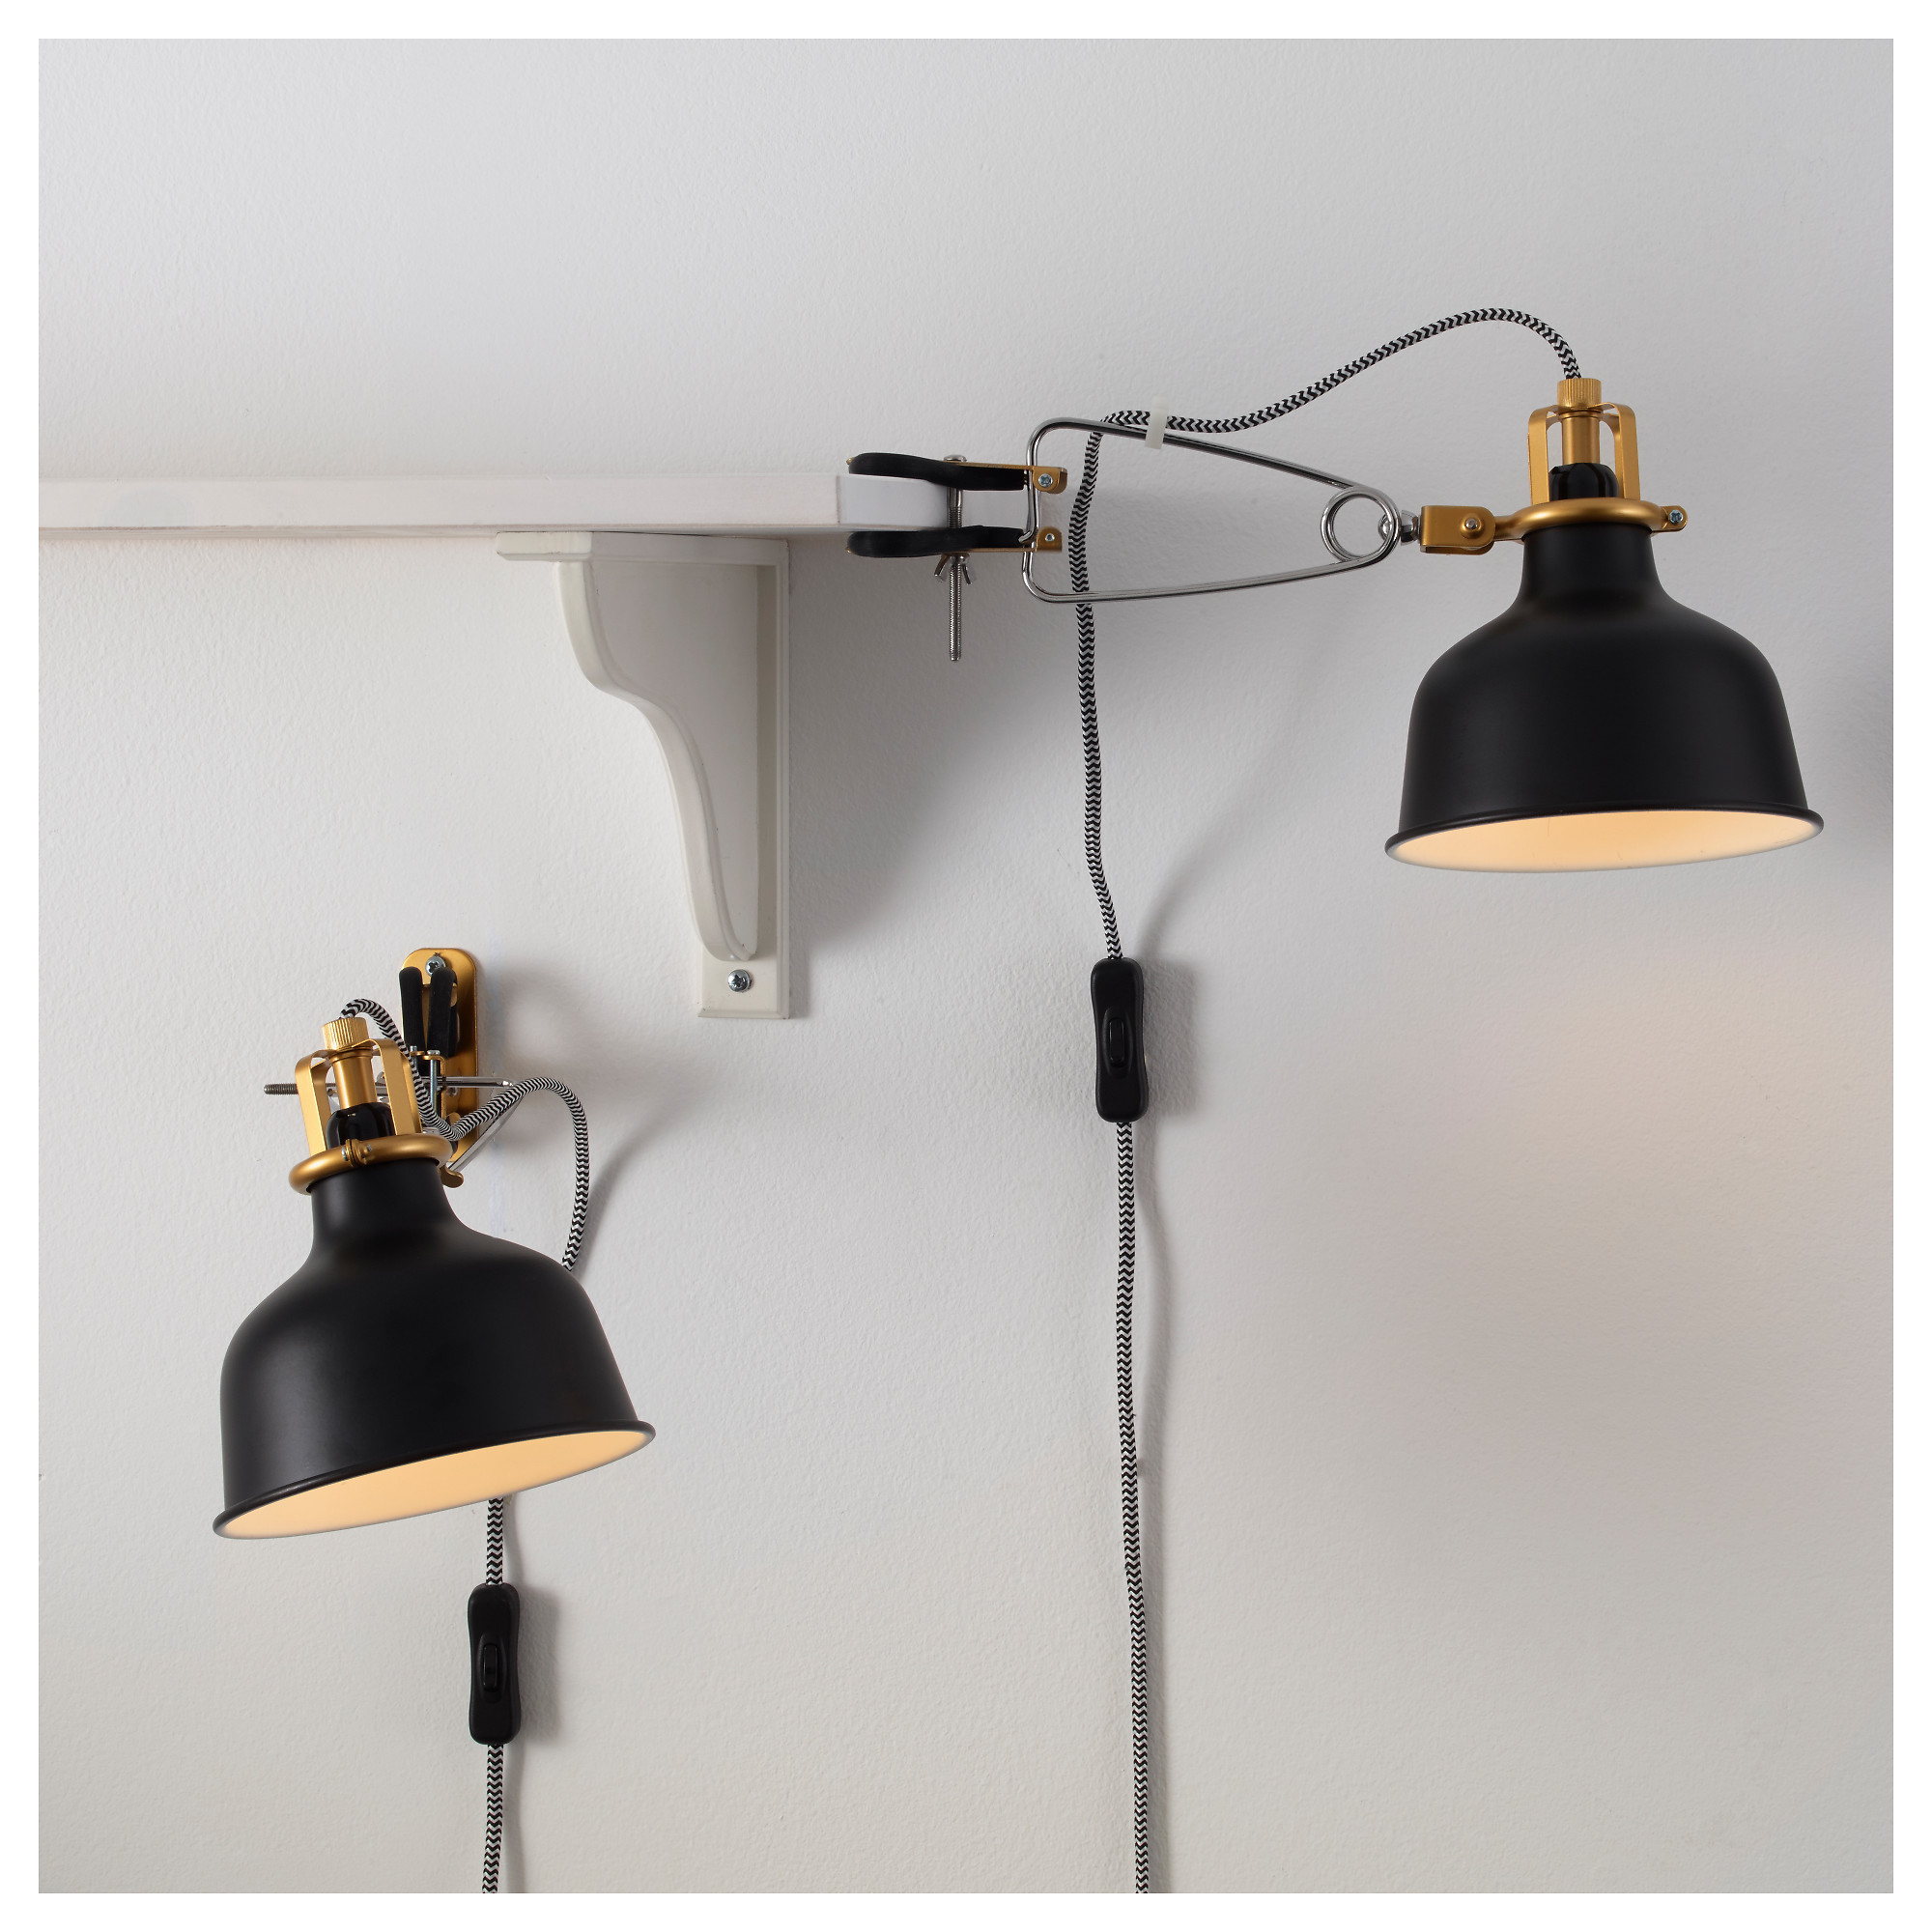 Exceptional RANARP Wall/clamp Spotlight   IKEA